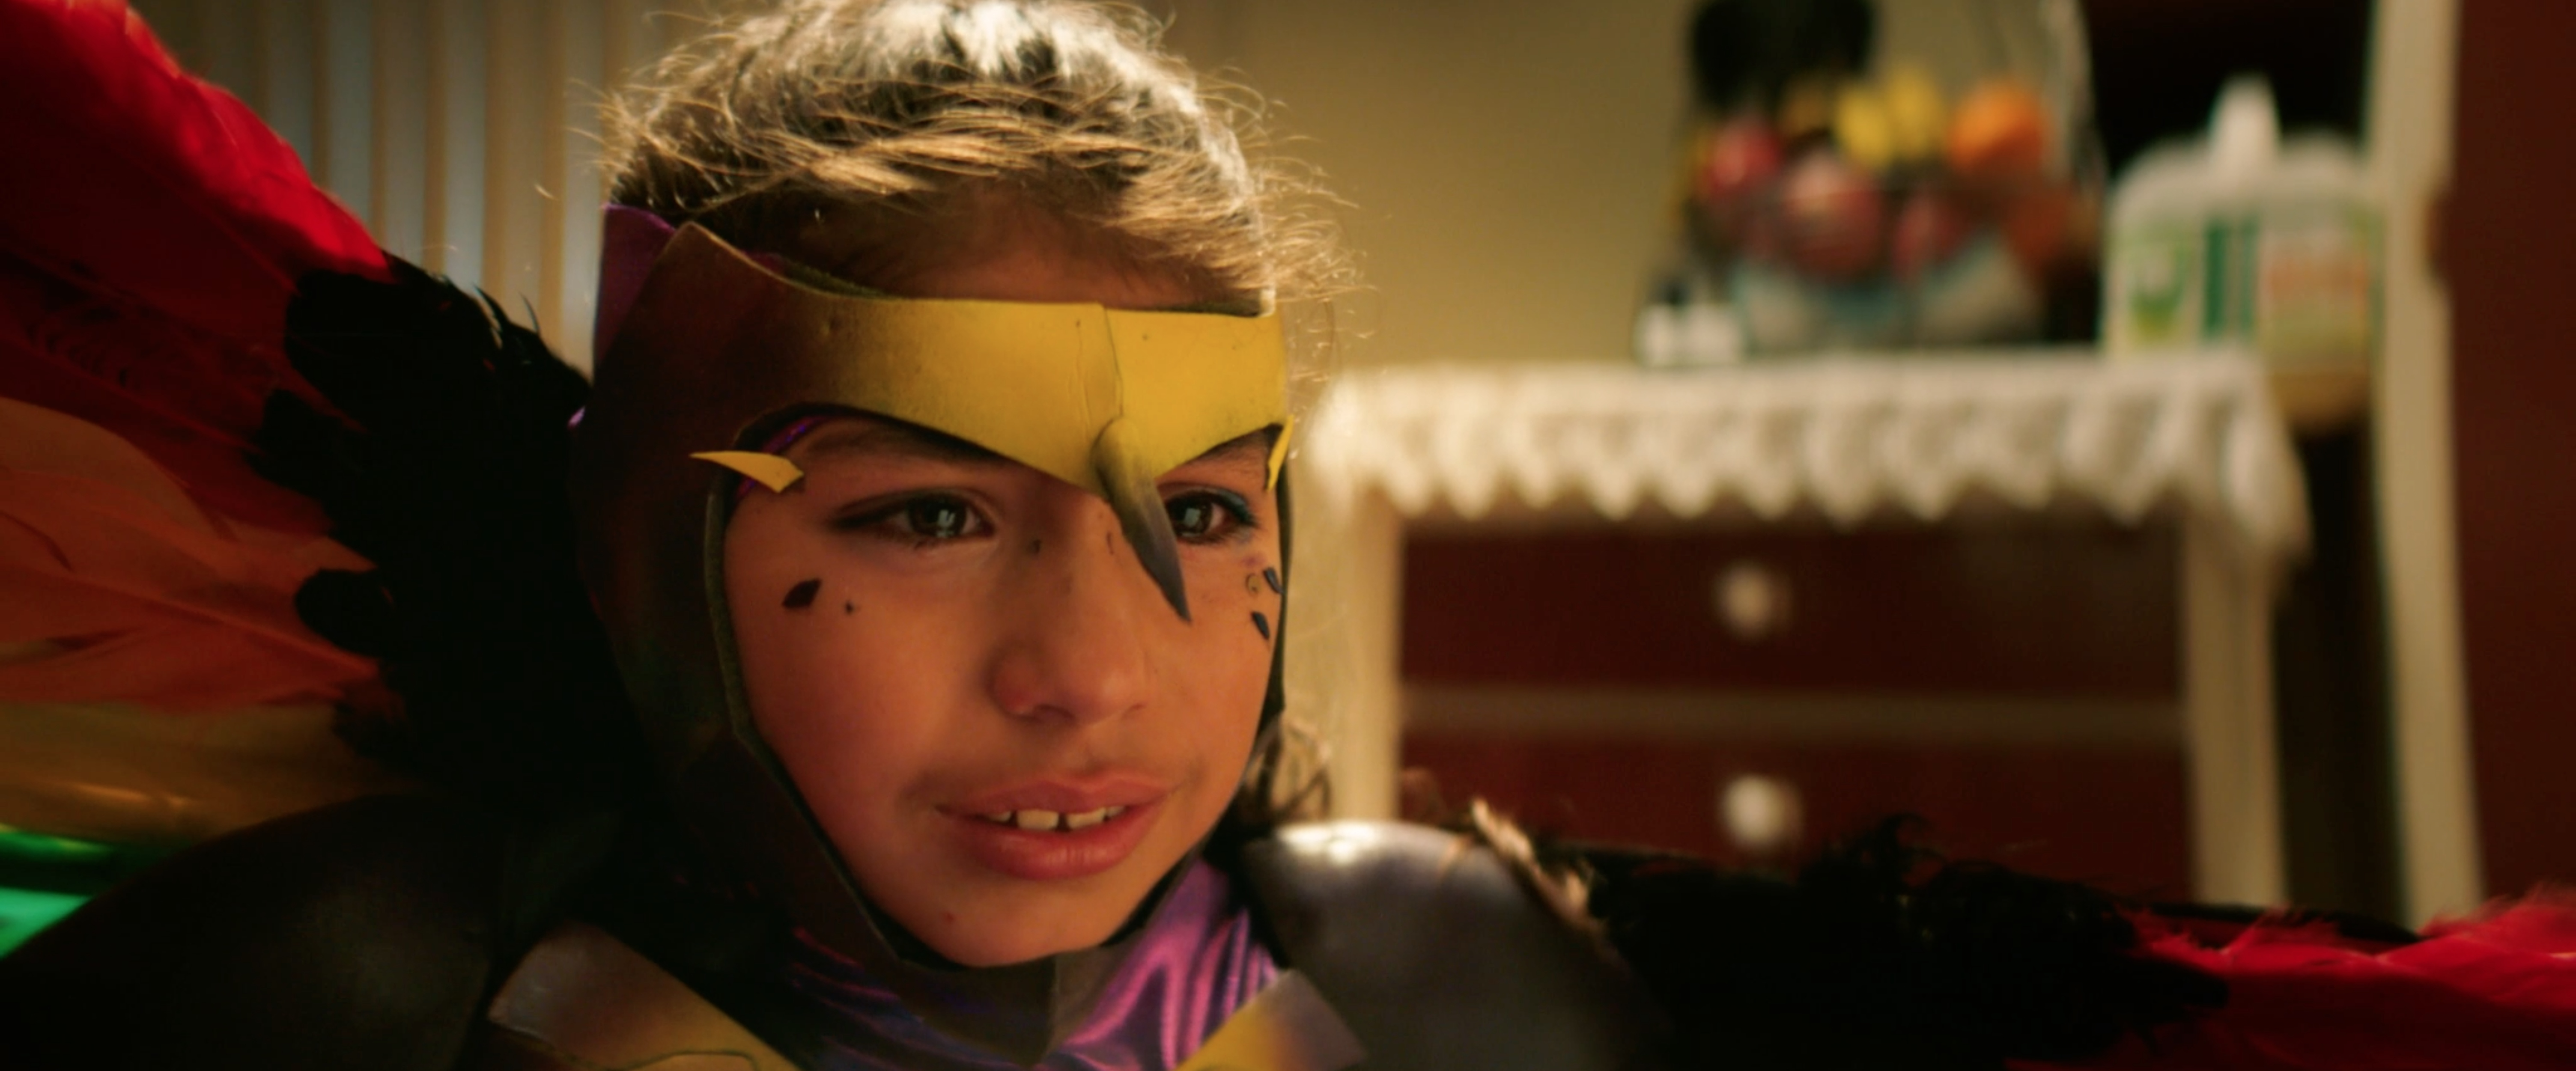 You Can Stream These Two Latino Short Films for Free on PBS